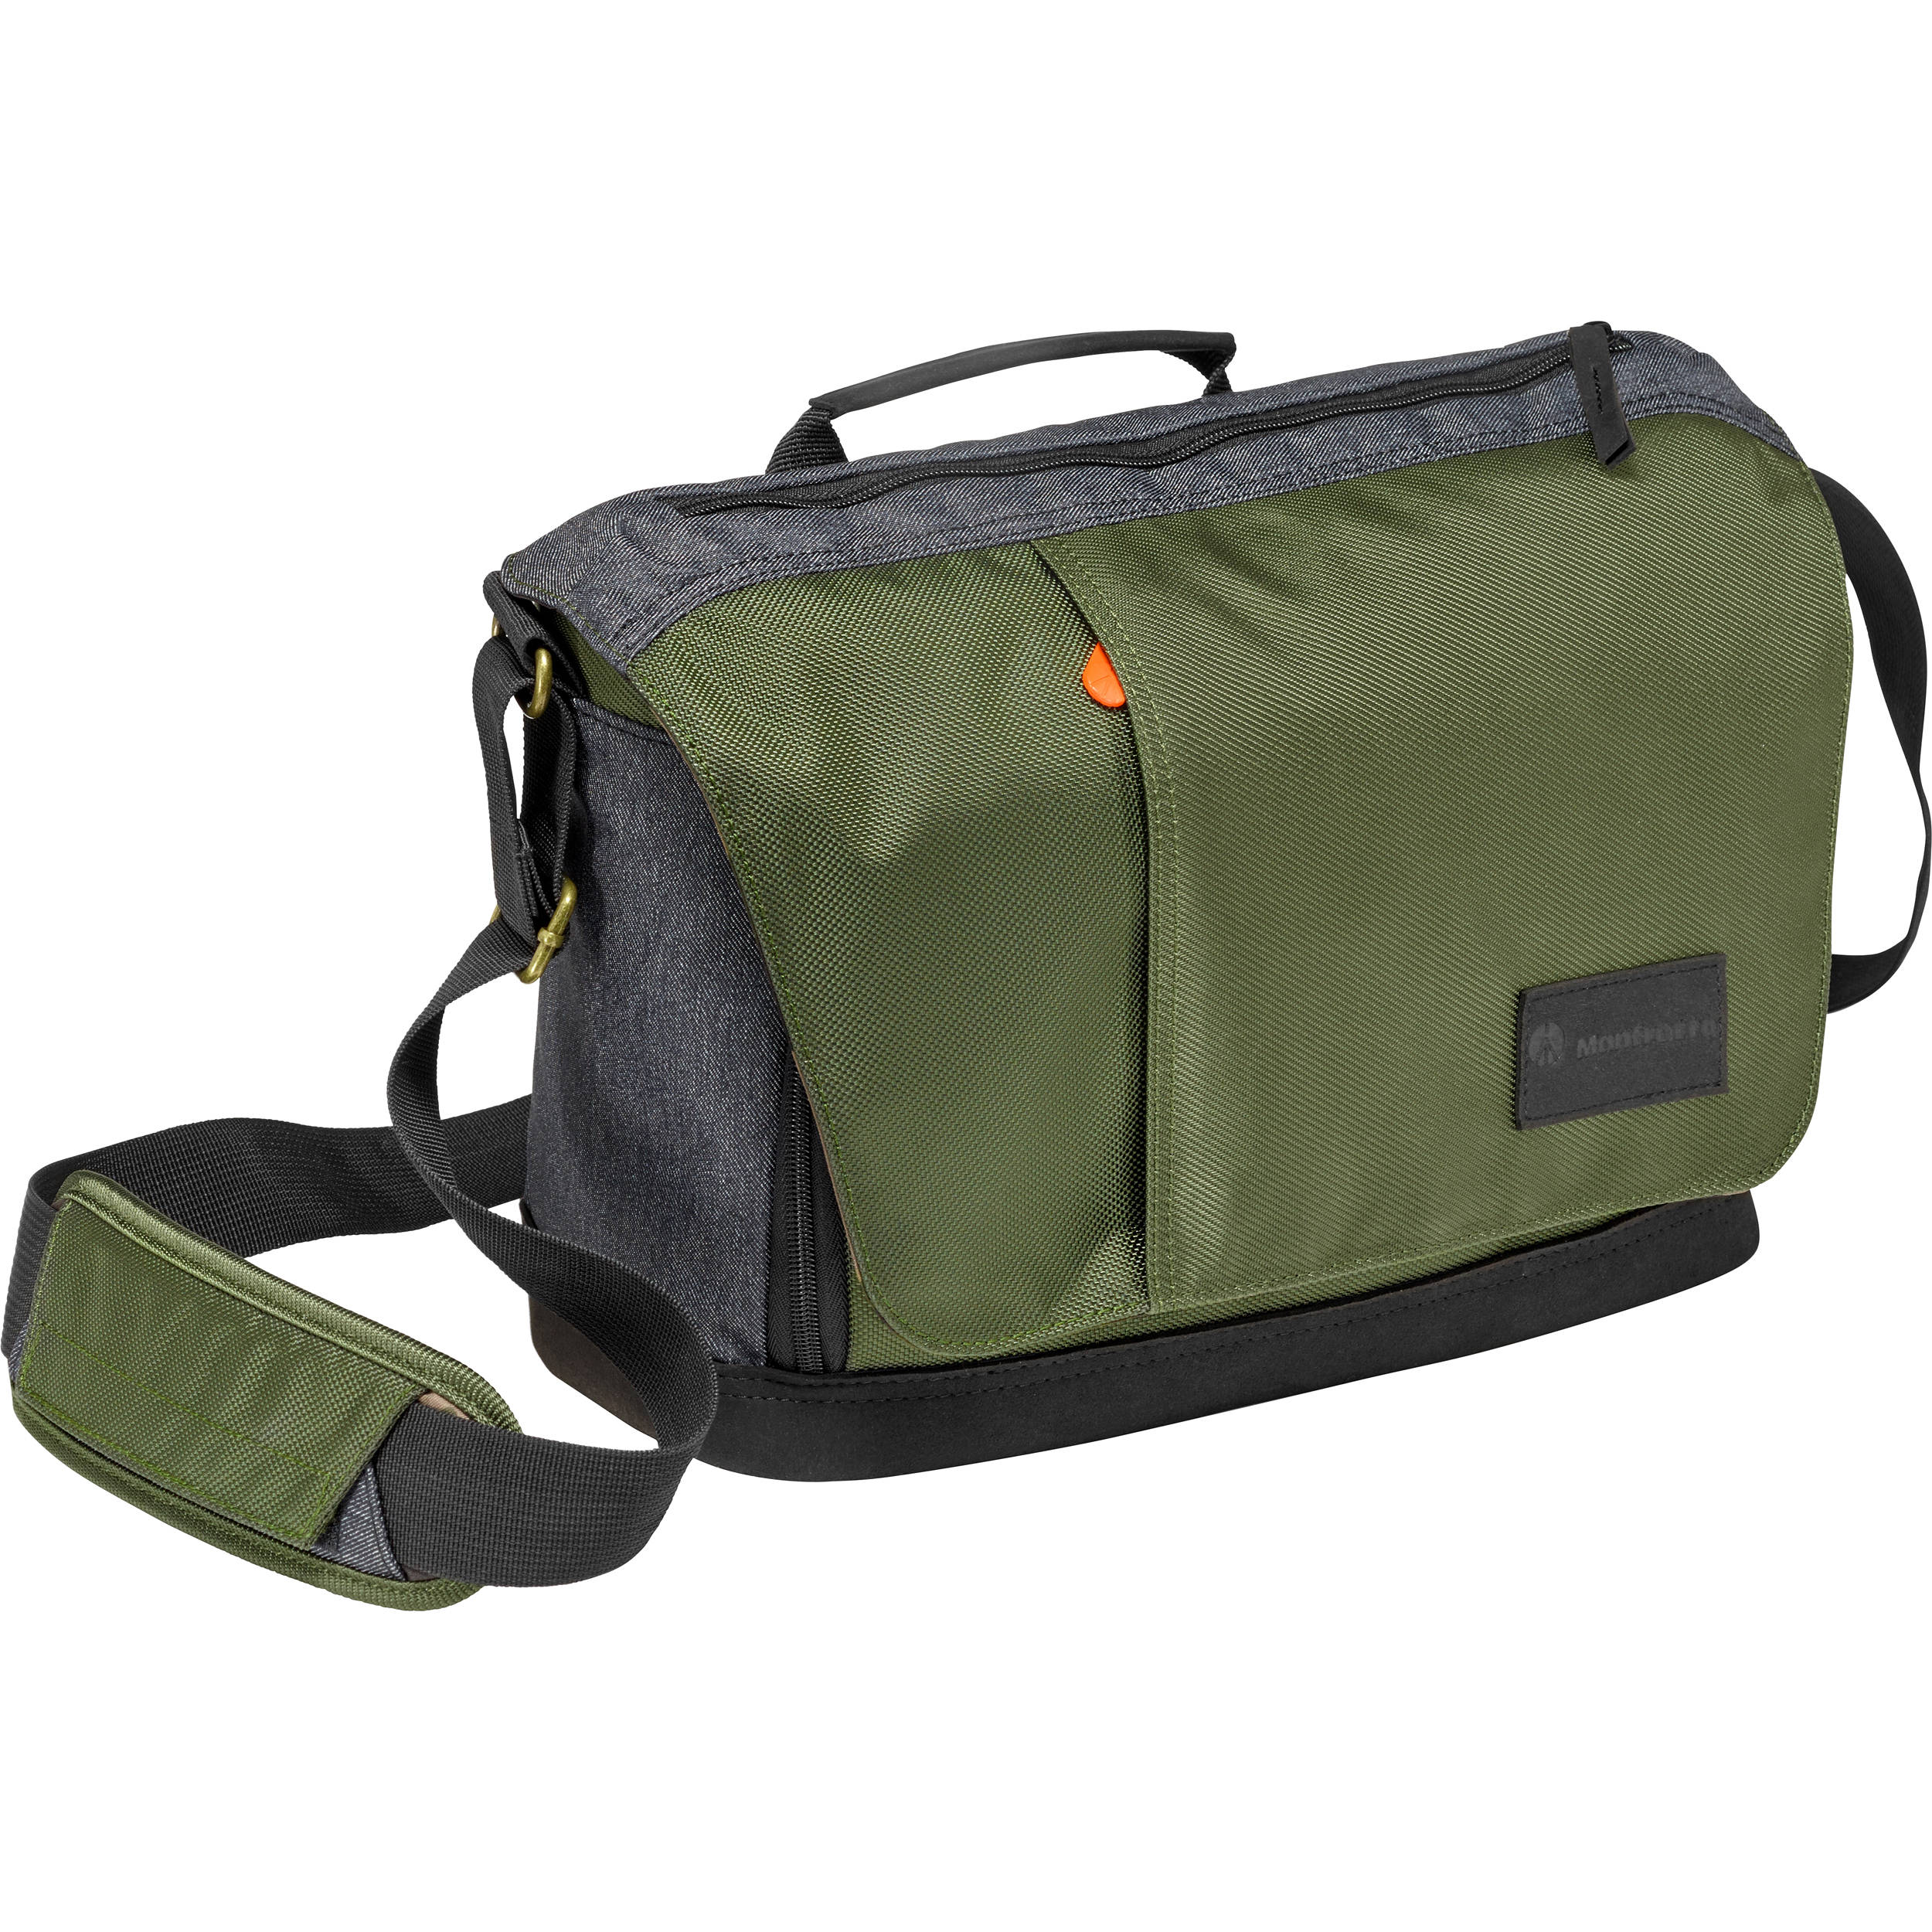 Manfrotto Street Camera Messenger Bag For Csc Dslr Green And Gray